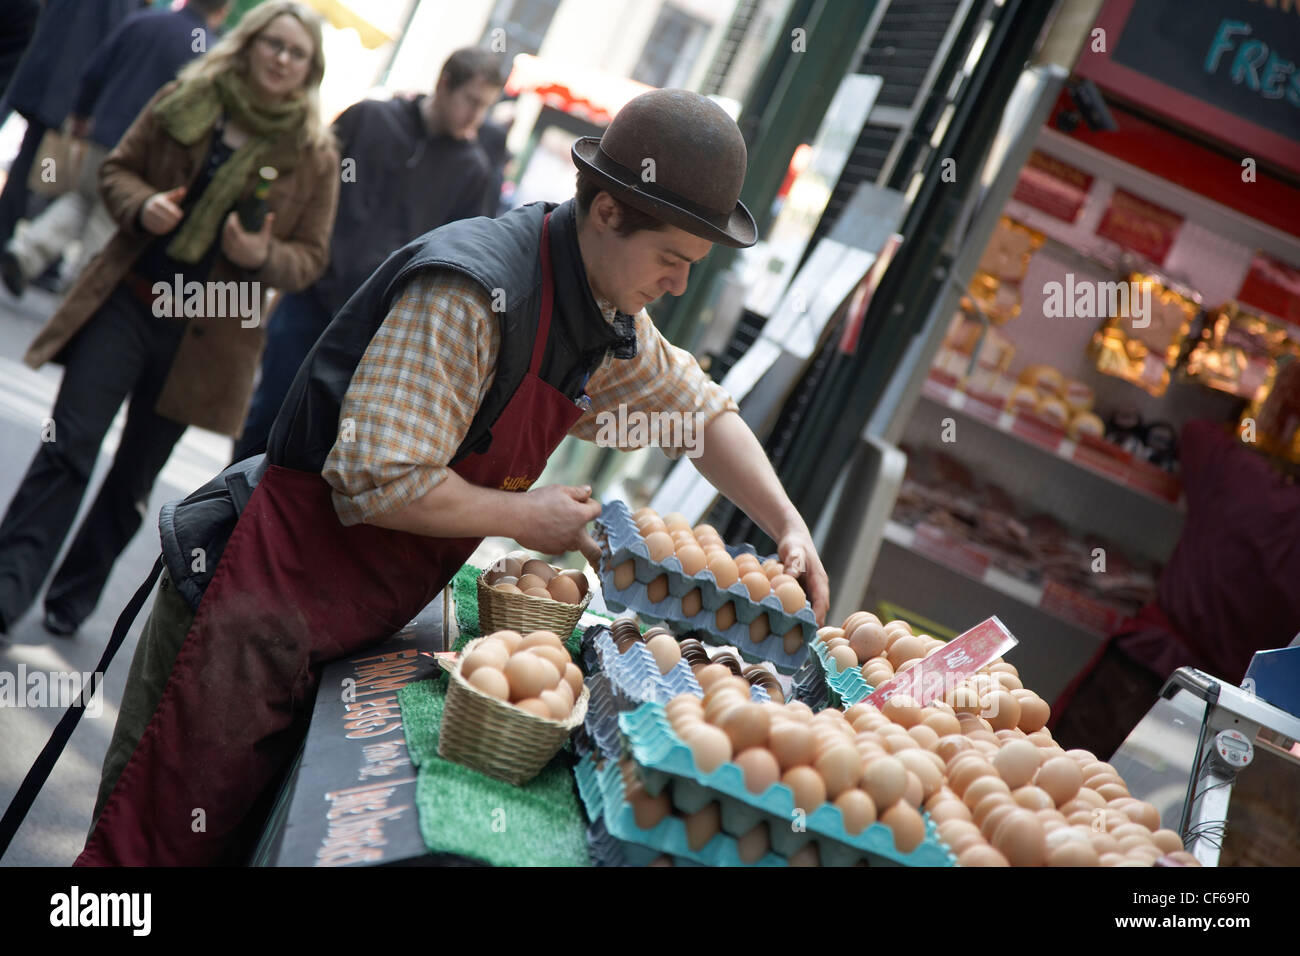 An interior view of stalls and customers at Borough Market. Stock Photo